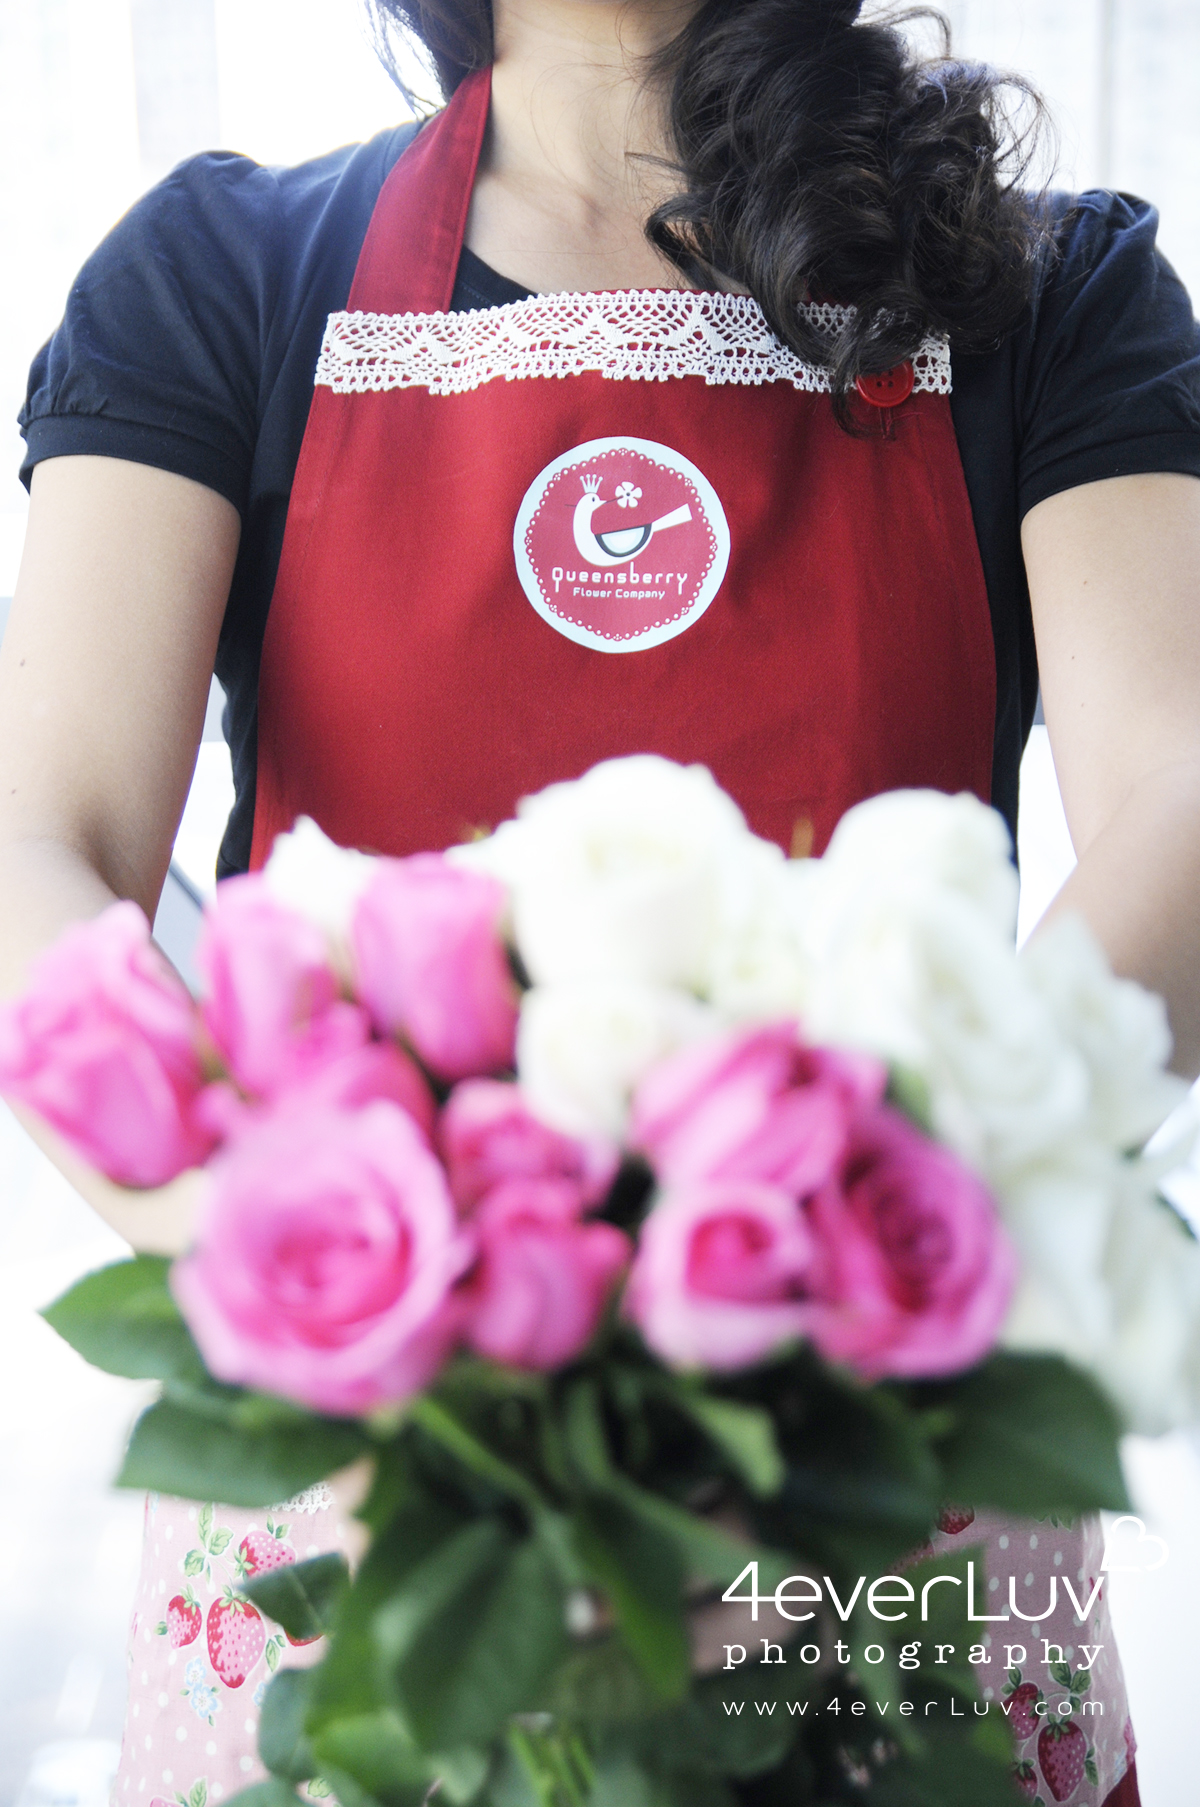 Interview with Queensberry Flower Company